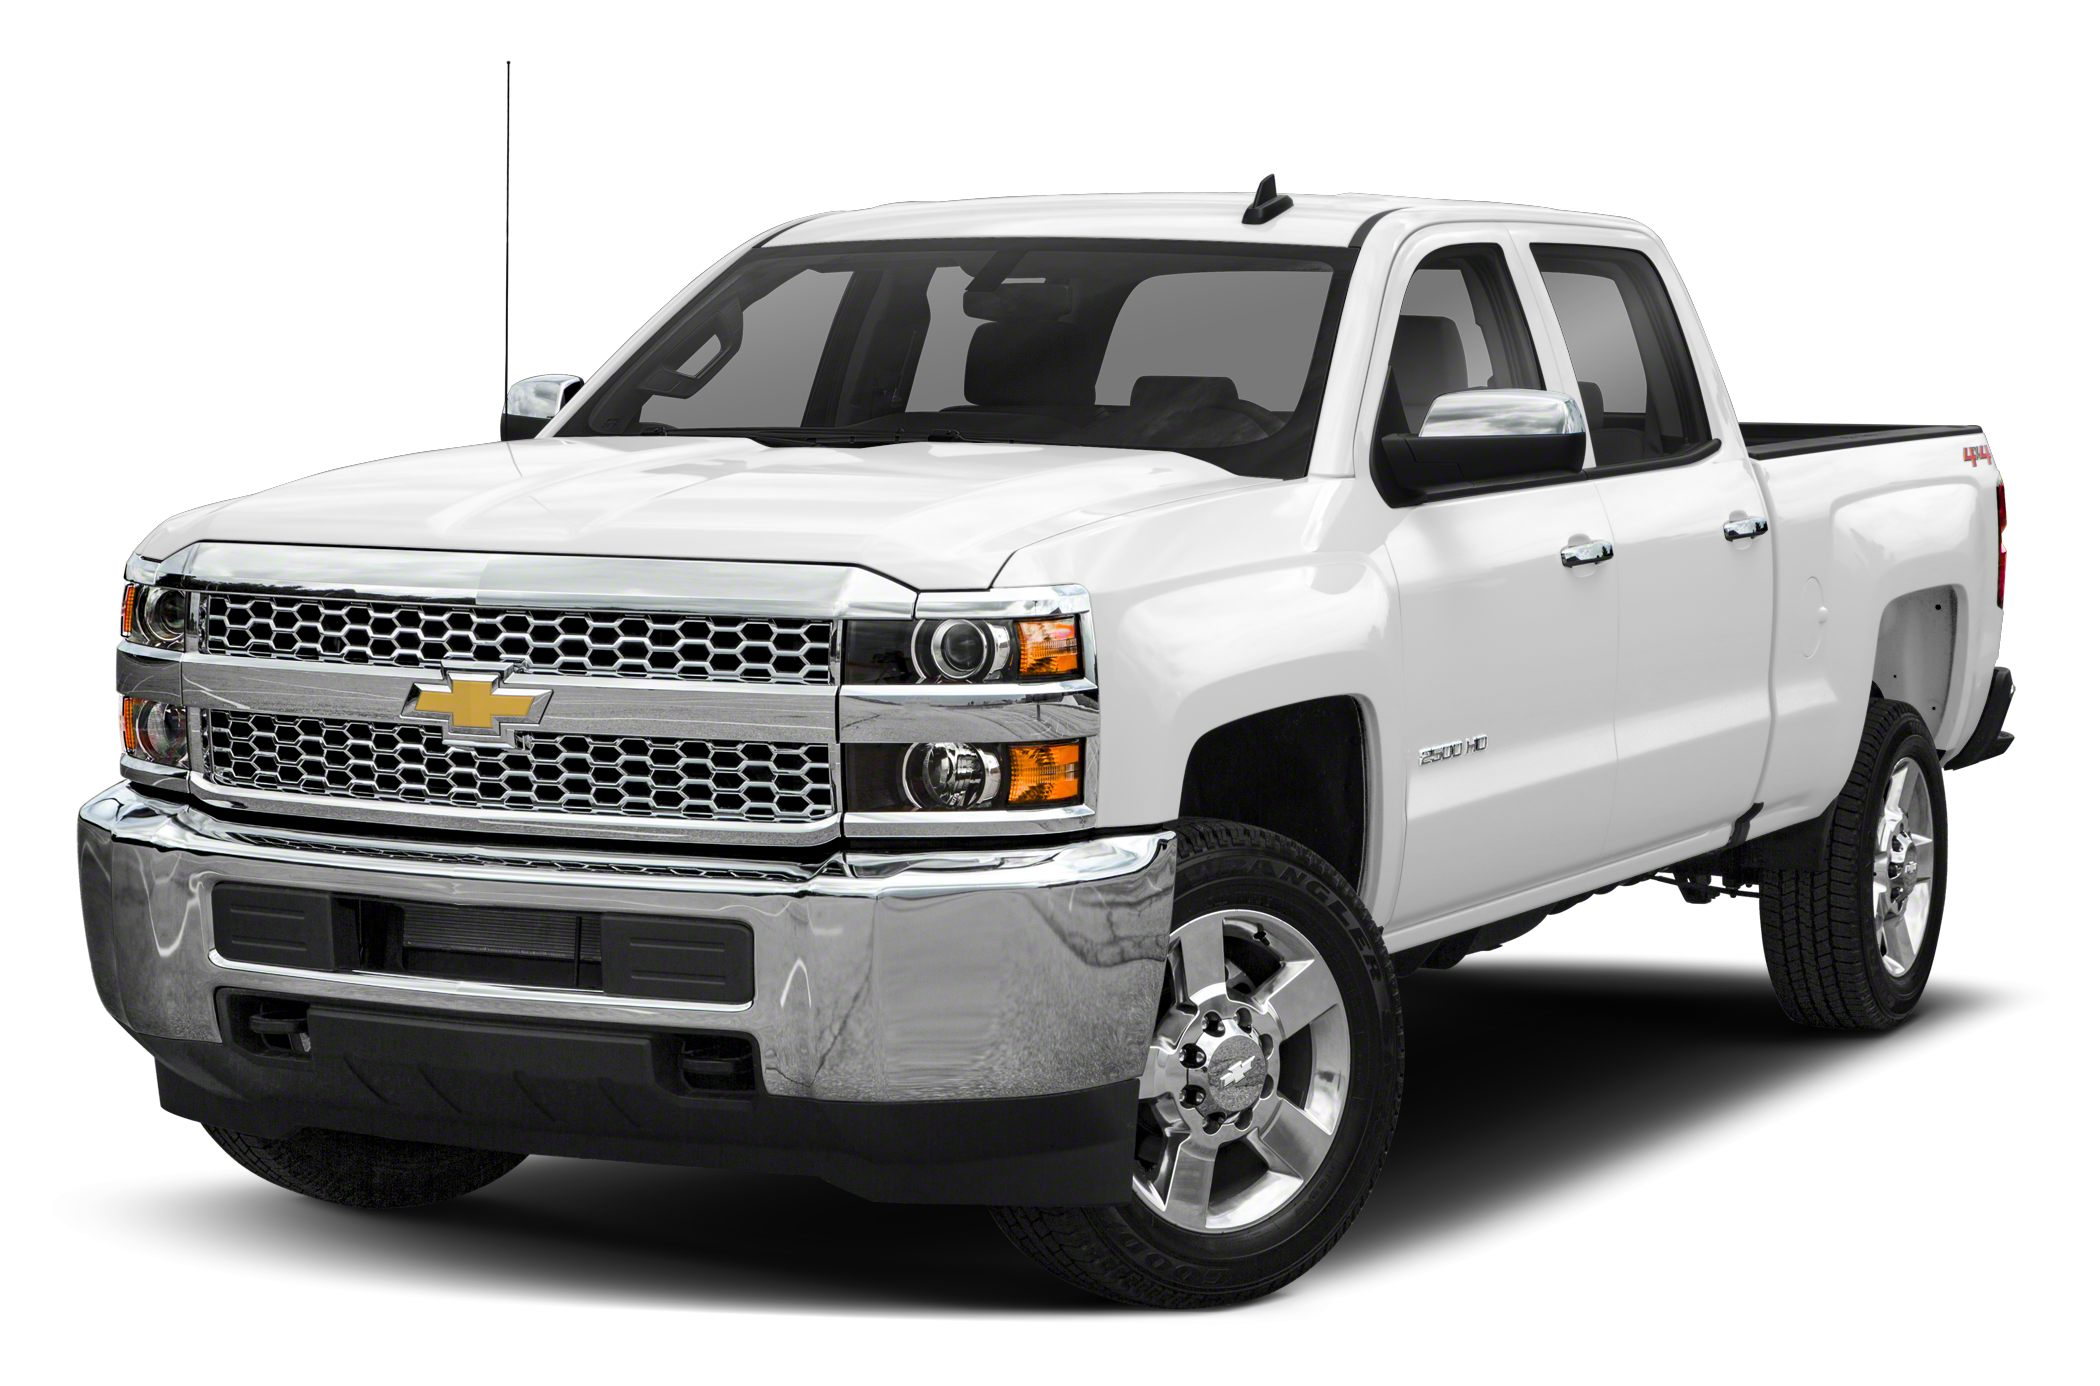 2019 Chevrolet Silverado 2500HD WT 4x4 Crew Cab 6.6 ft. box 153.7 in. WB